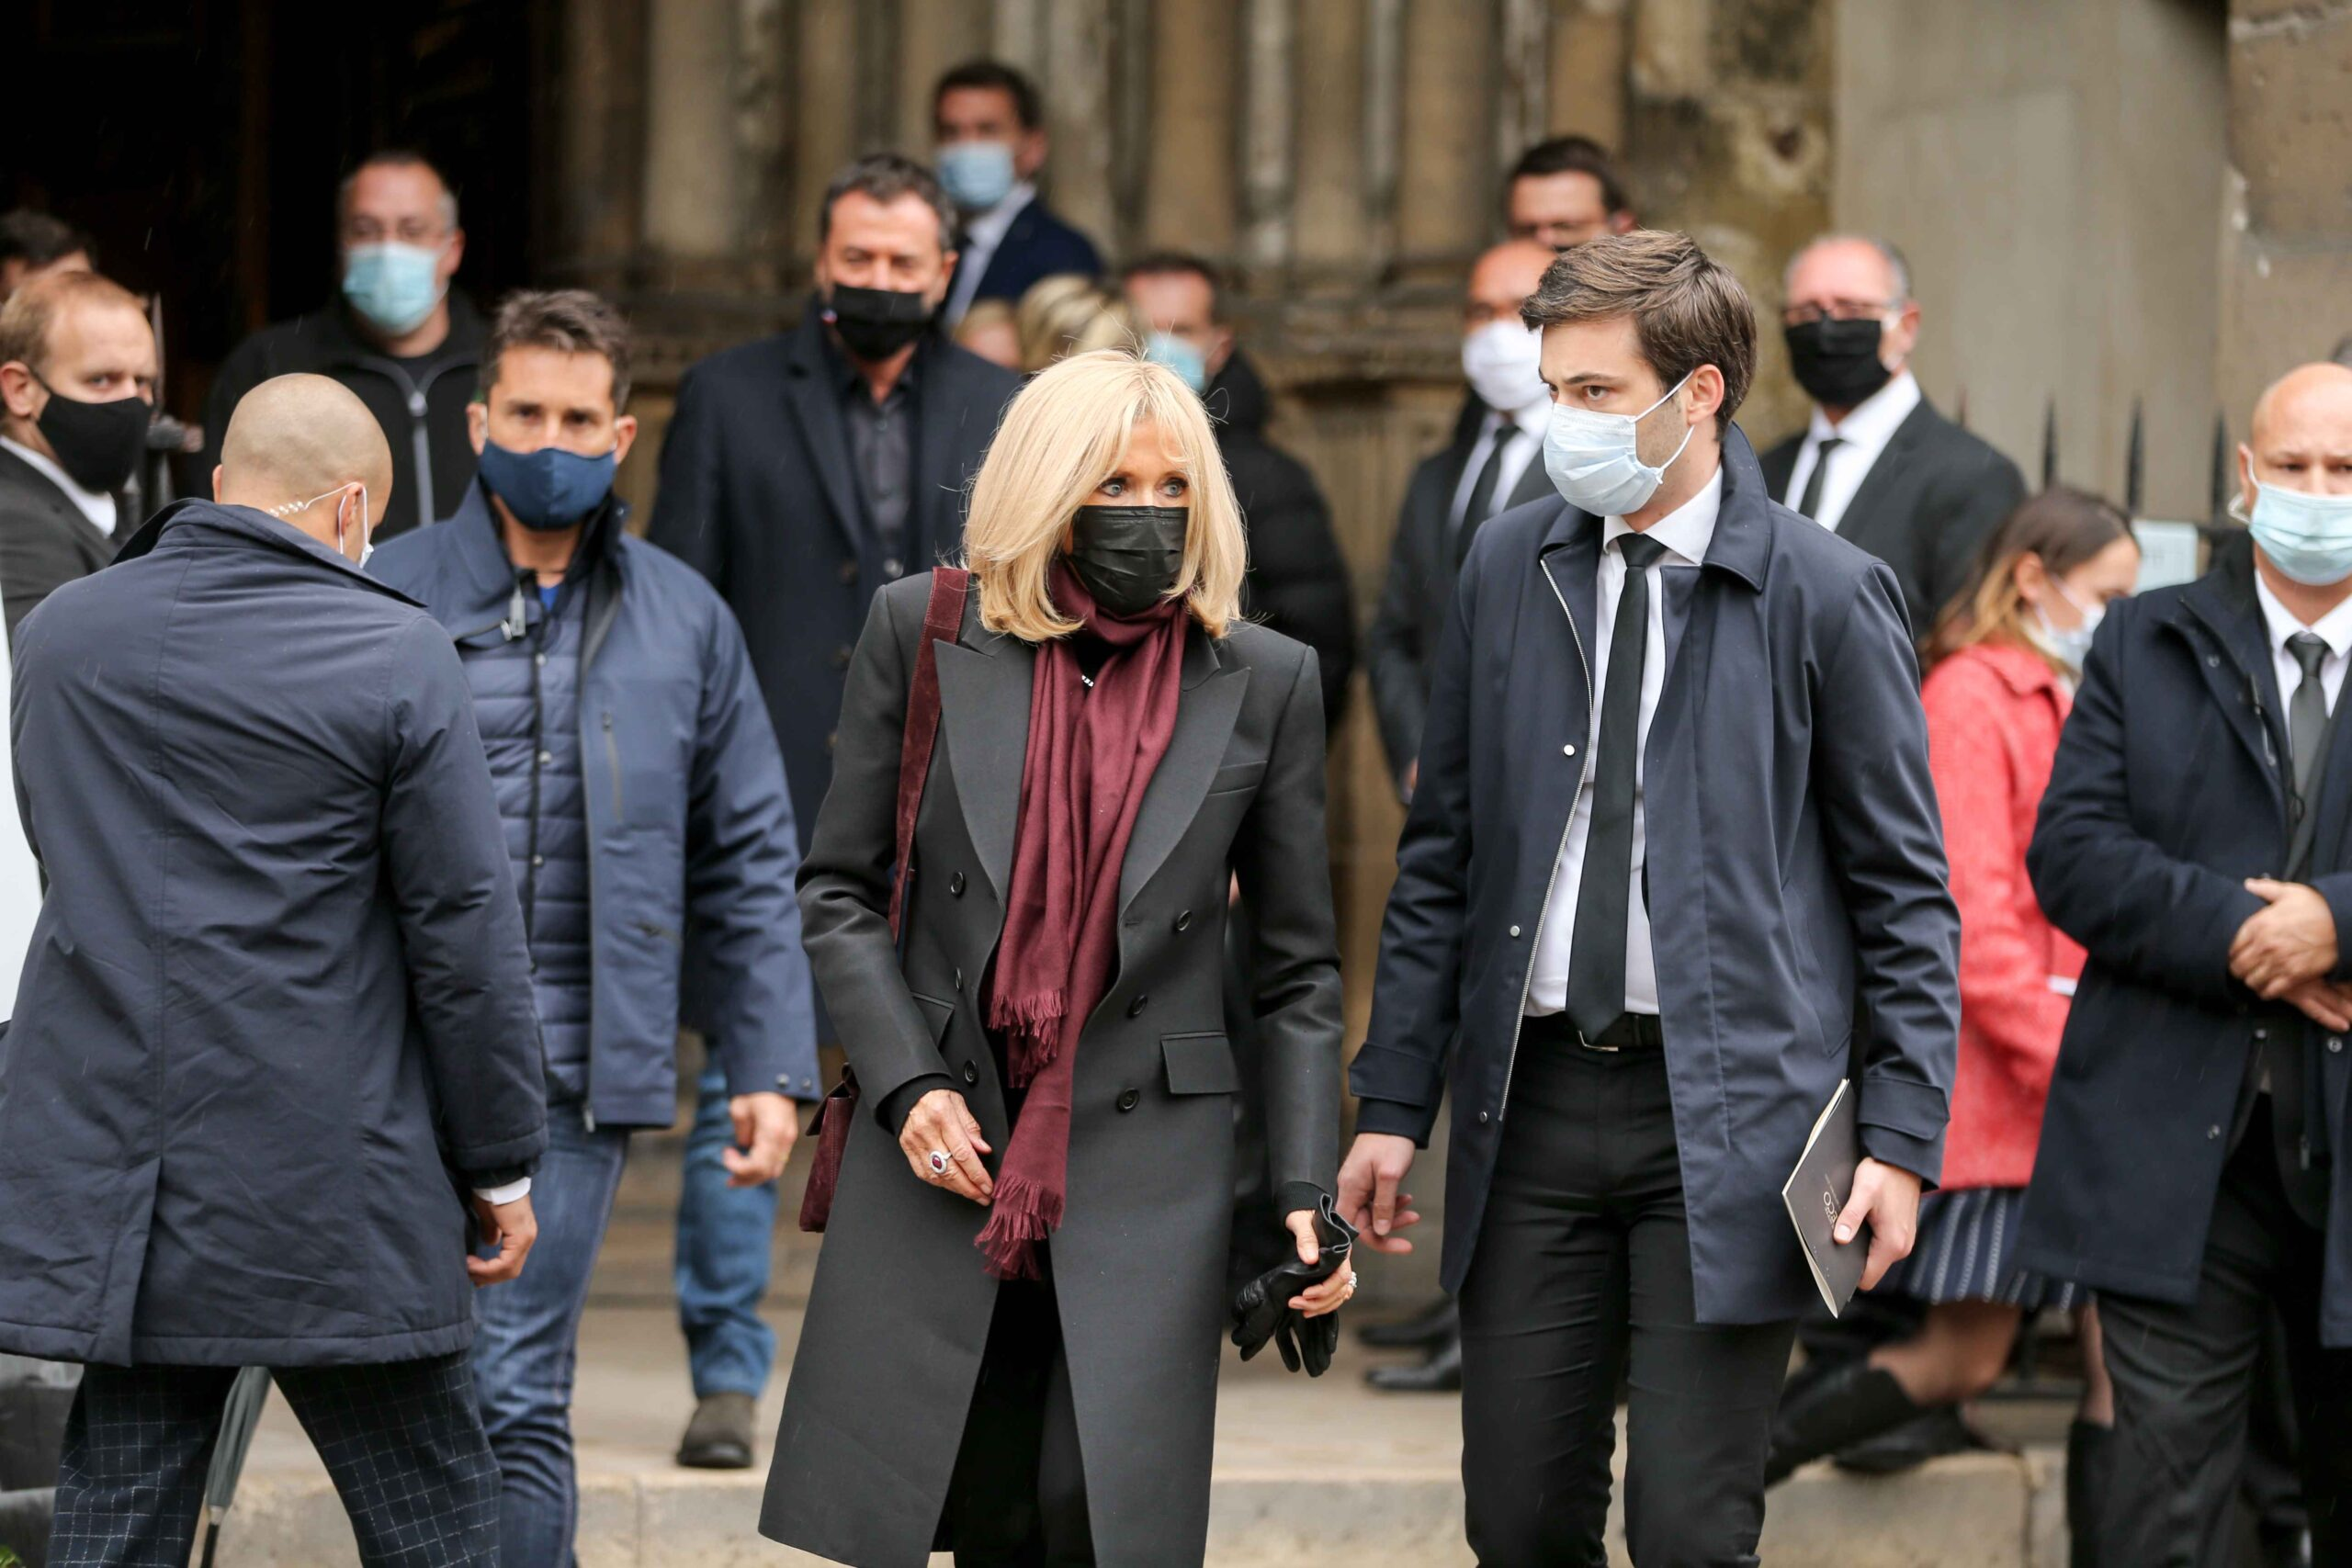 French President's wife Brigitte Macron (C) leaves after attending the funerals of French singer Juliette Greco, at the Saint-Germain-des-Pres church in Paris, on October 5, 2020. Legendary French singer Juliette Greco whose career spanned over half a cent